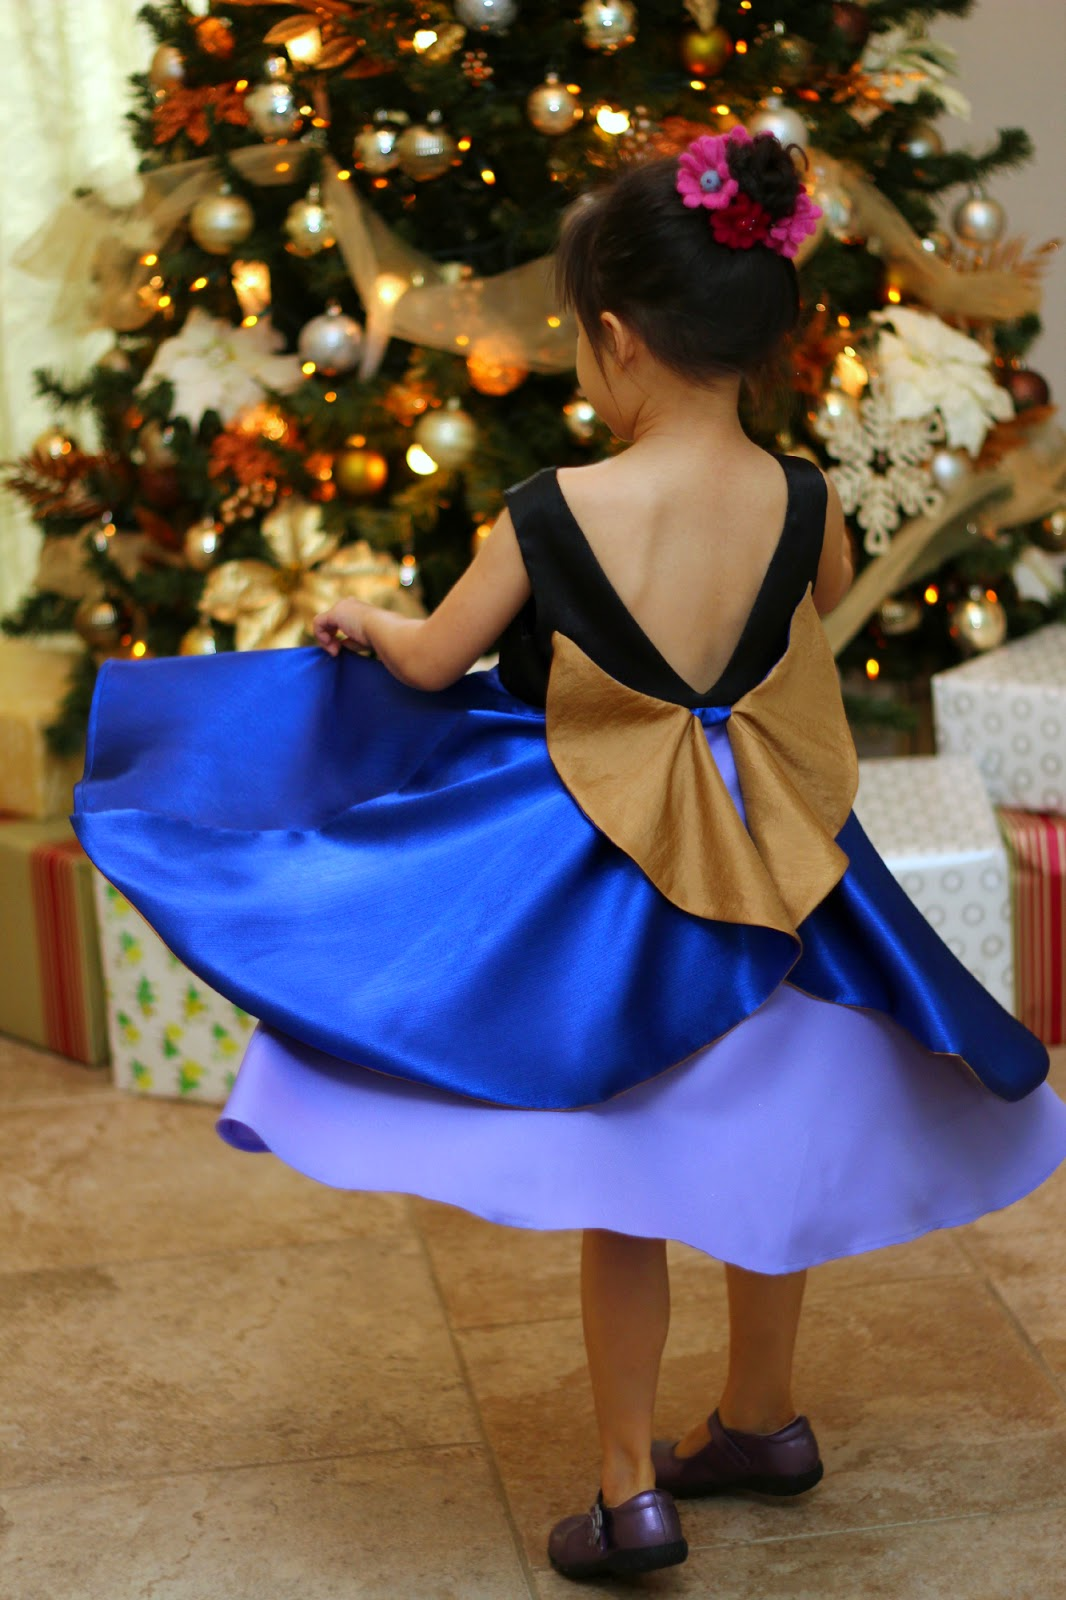 Just Skirts And Dresses Inspiration: Peaches And Bees: Frozen's Anna Inspired Holiday Dress For